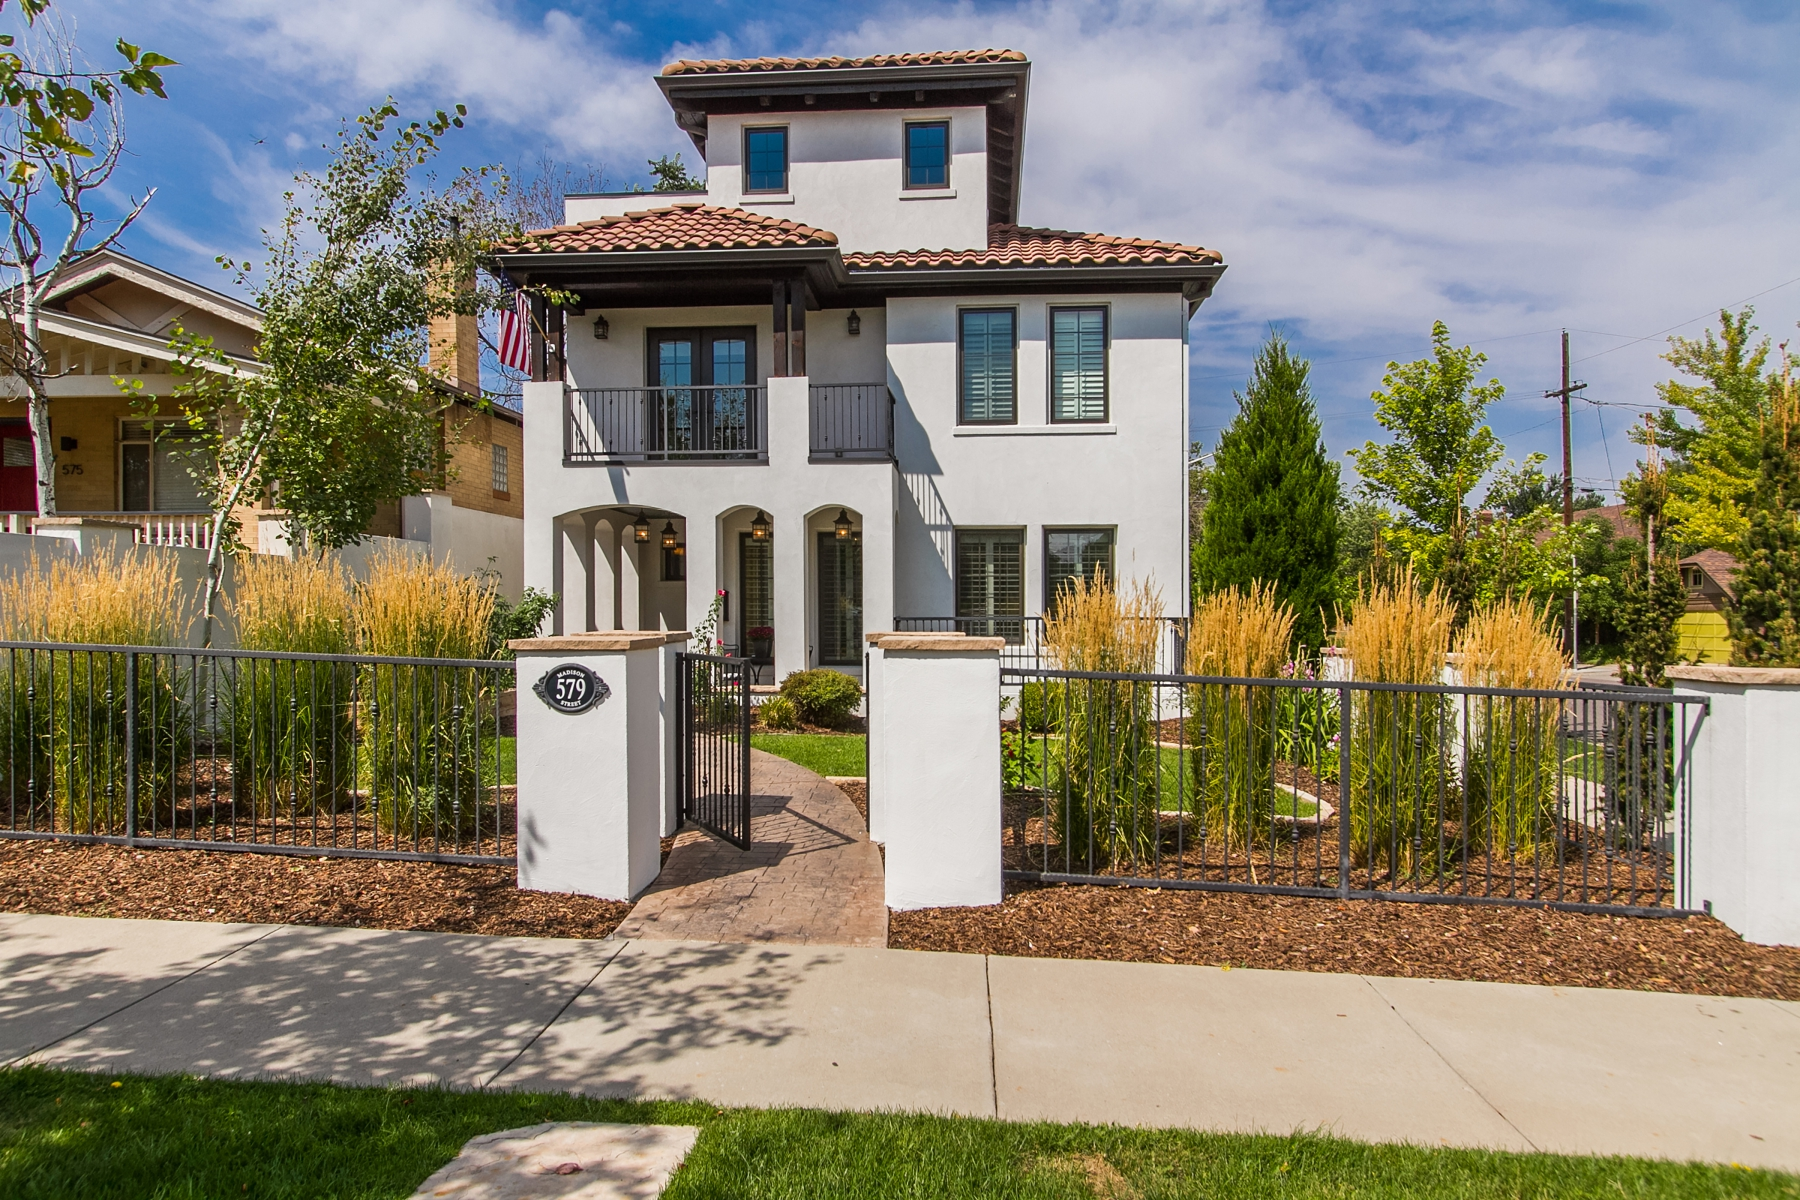 Single Family Home for Sale at This Mediterranean Masterpiece Will Take Your Breath Away 579 Madison Street Denver, Colorado 80206 United States